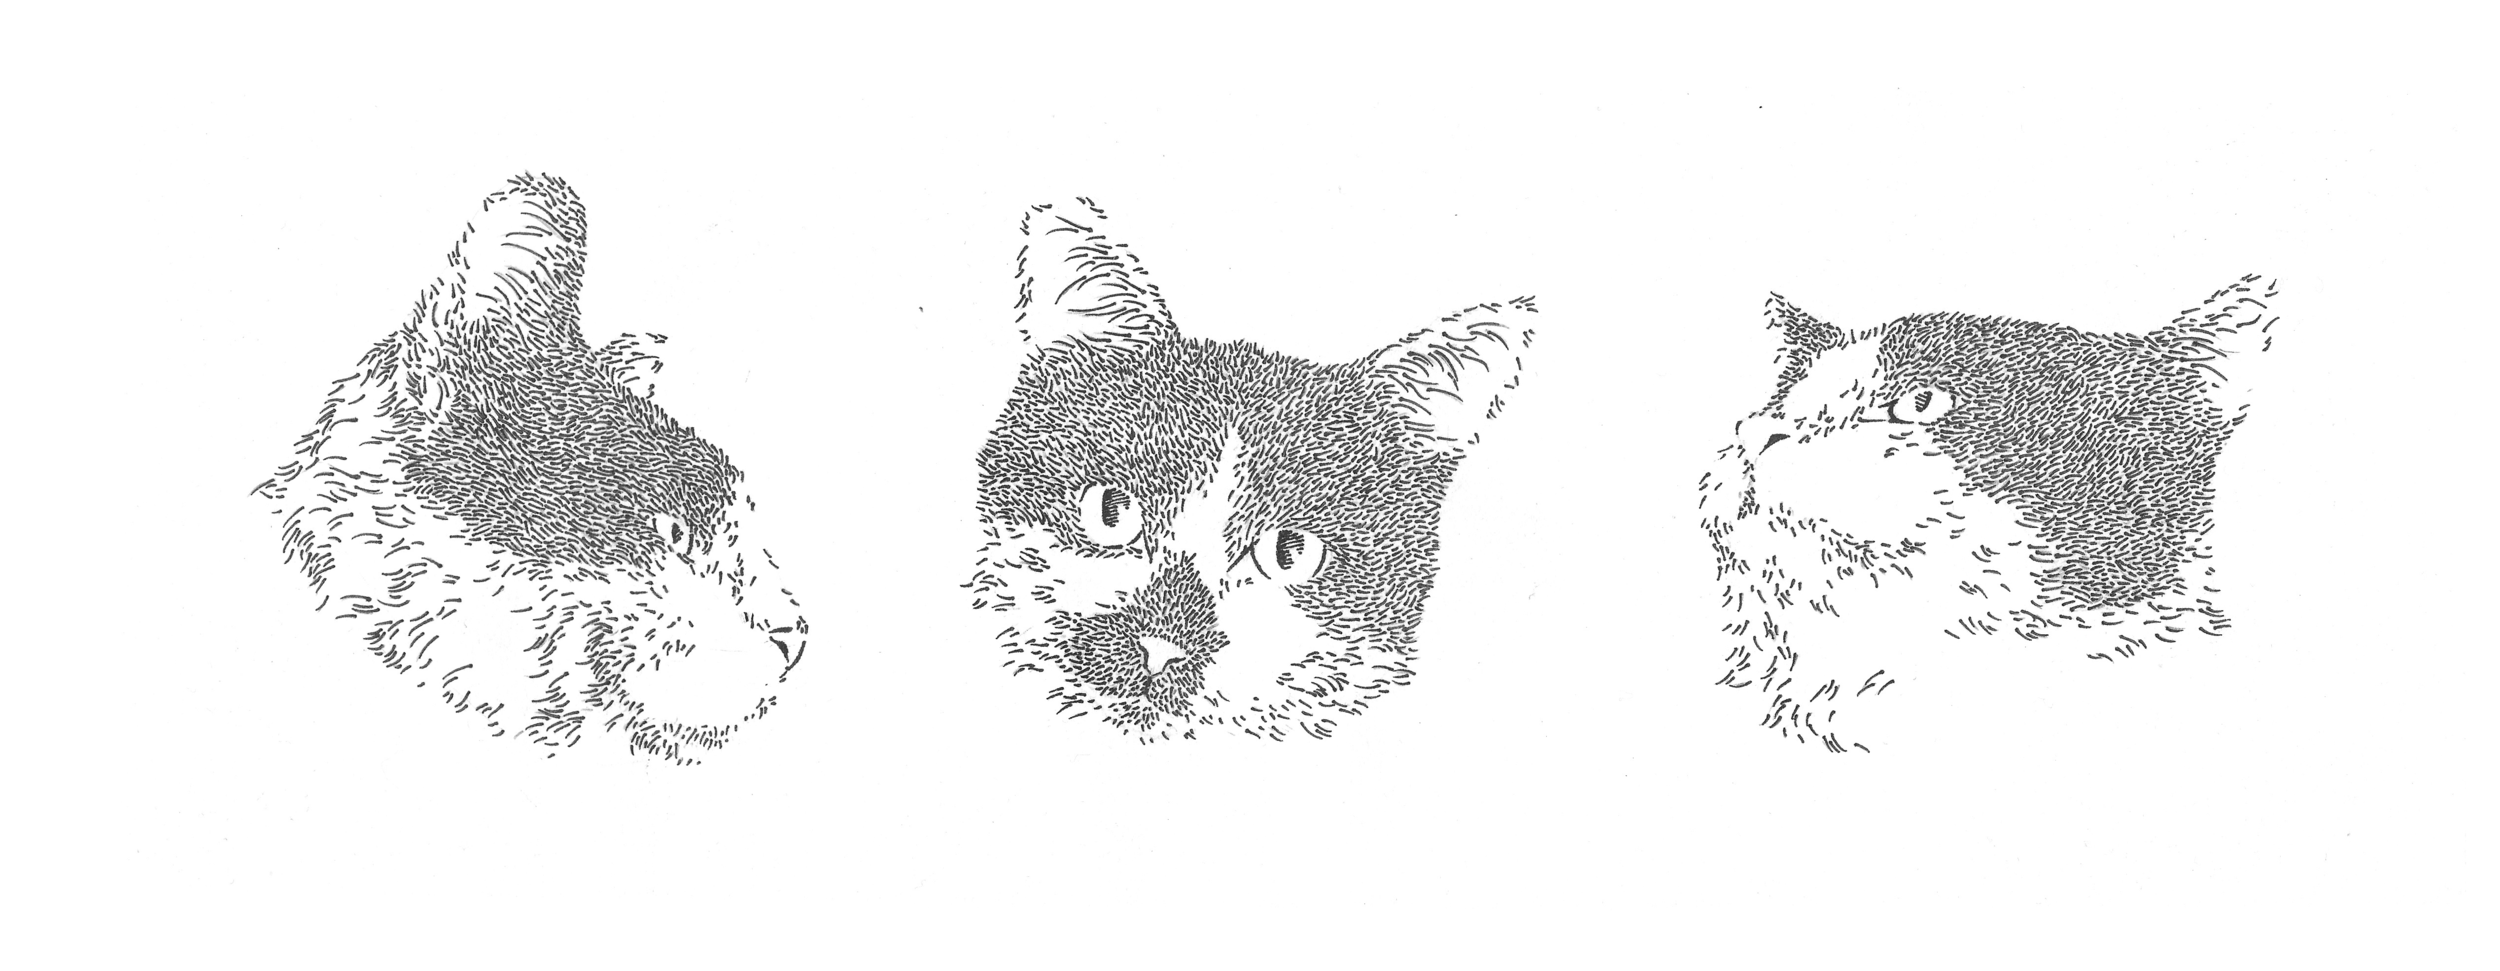 The Tuxedo Trio: Mig, Tilly, and Rav   Pen on Paper   Summer 2016  This piece was created to commemorate the first ever triple adoption from Cat Town